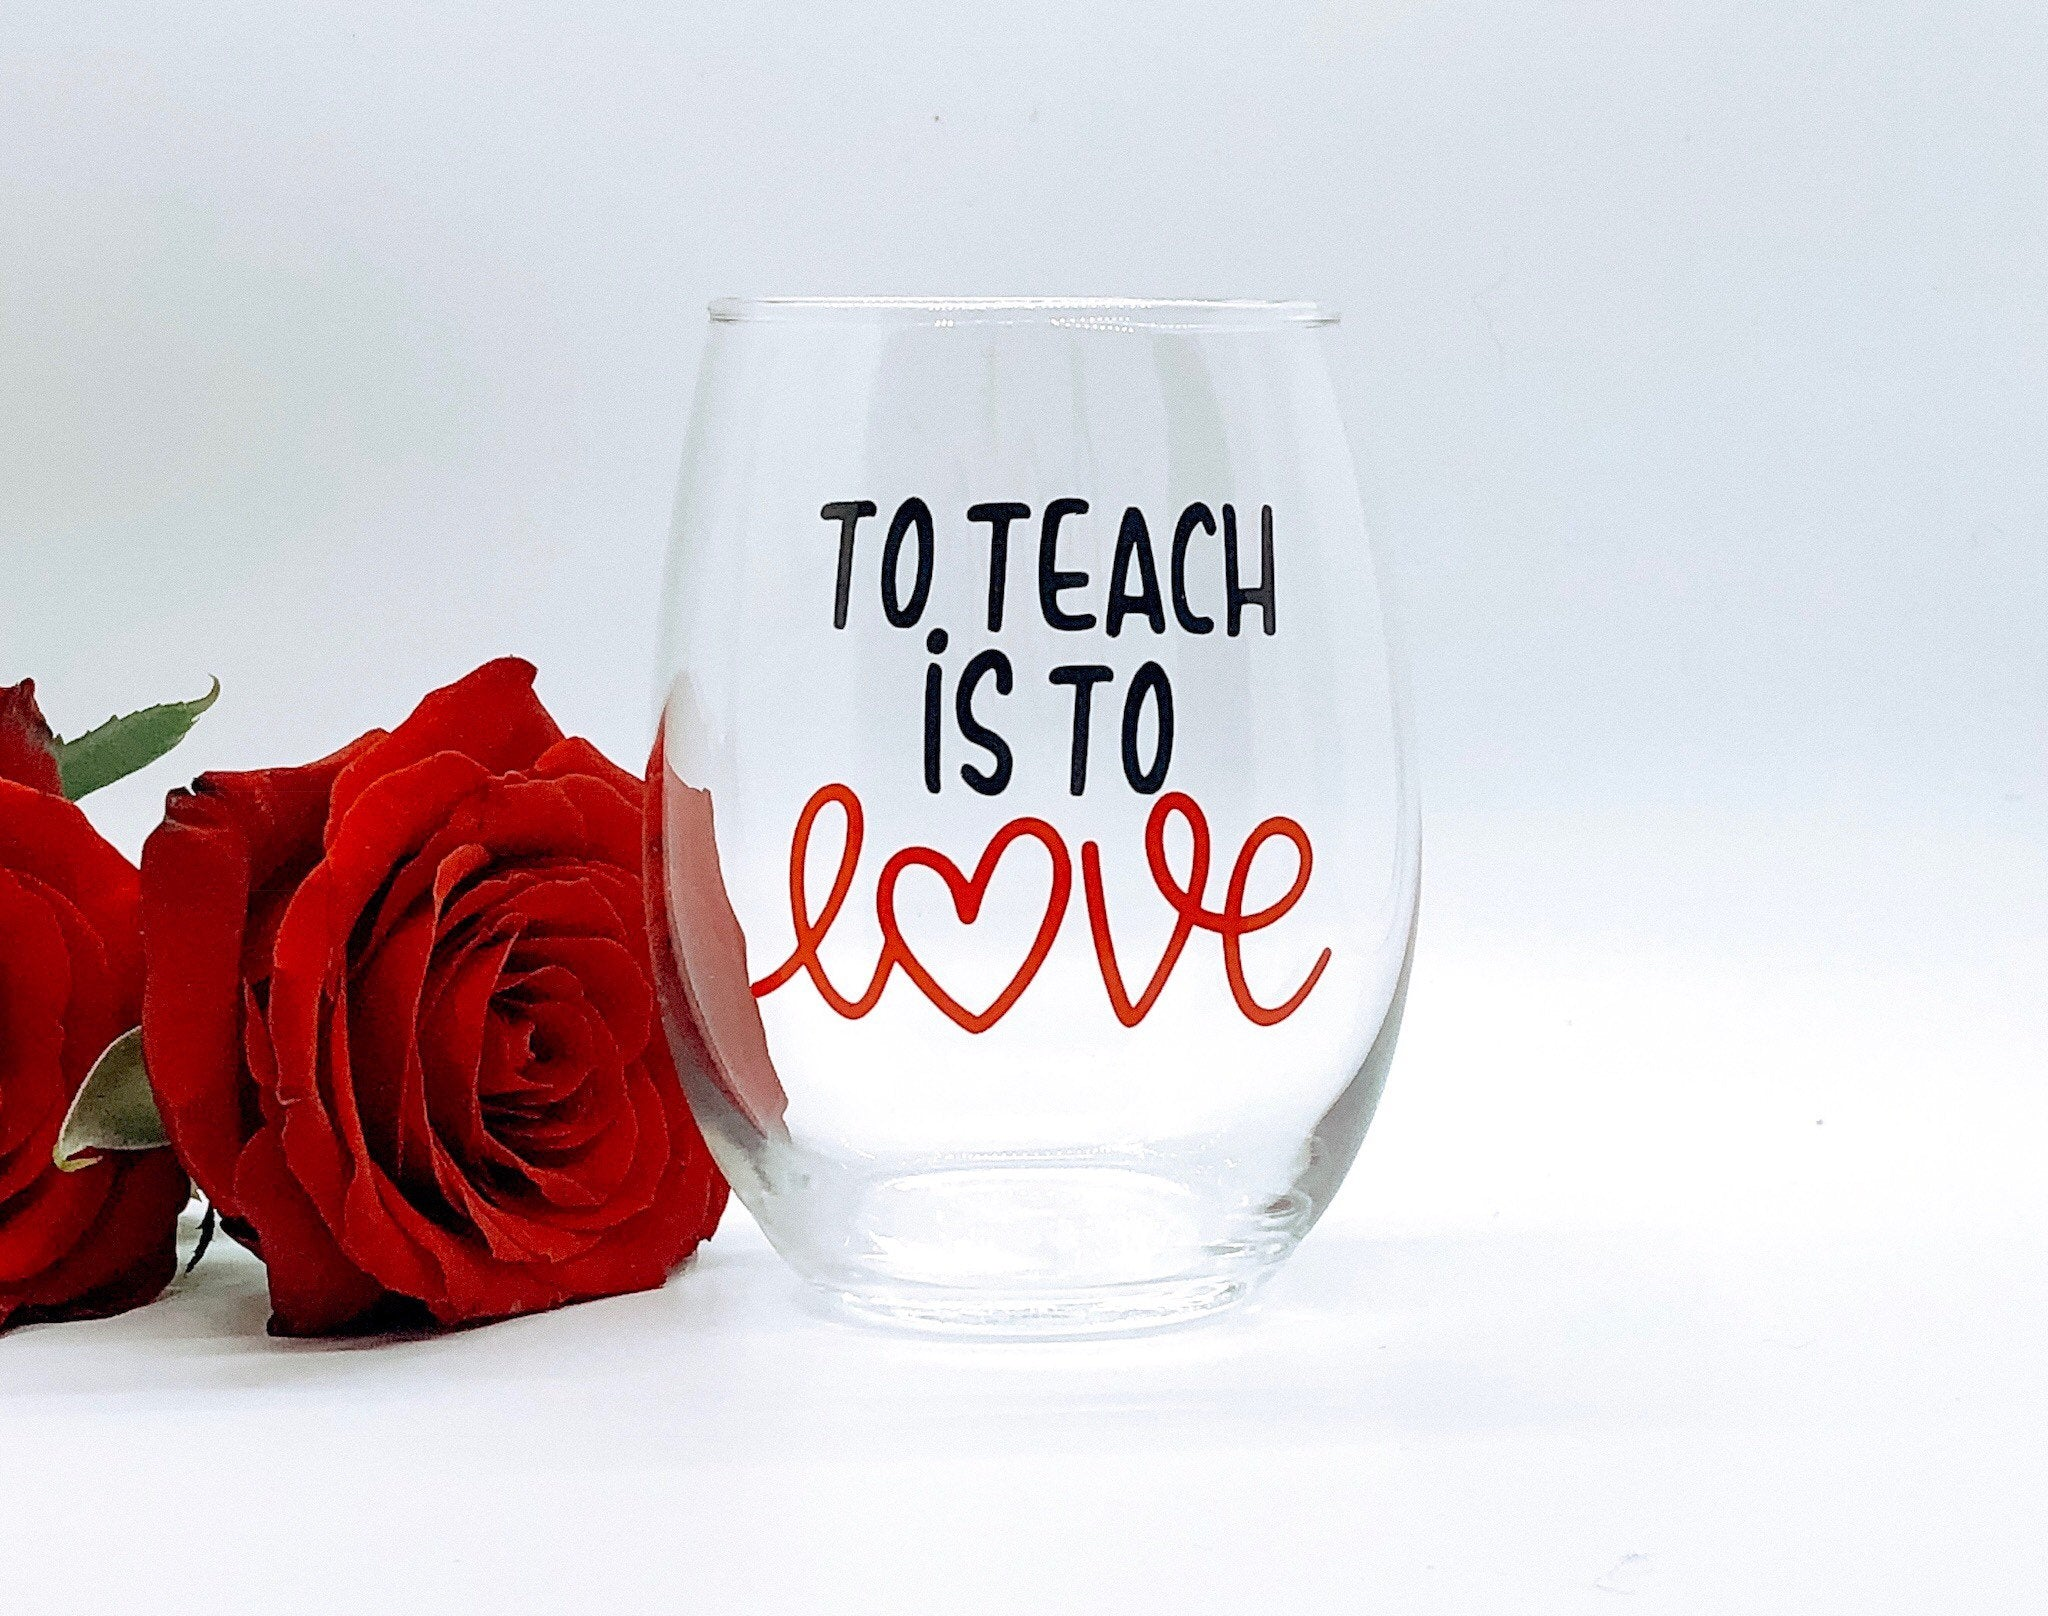 valentines gift for teacher, teacher valentines gift, cute teacher gift, Valentines Day glass from student, to teach is to love glass